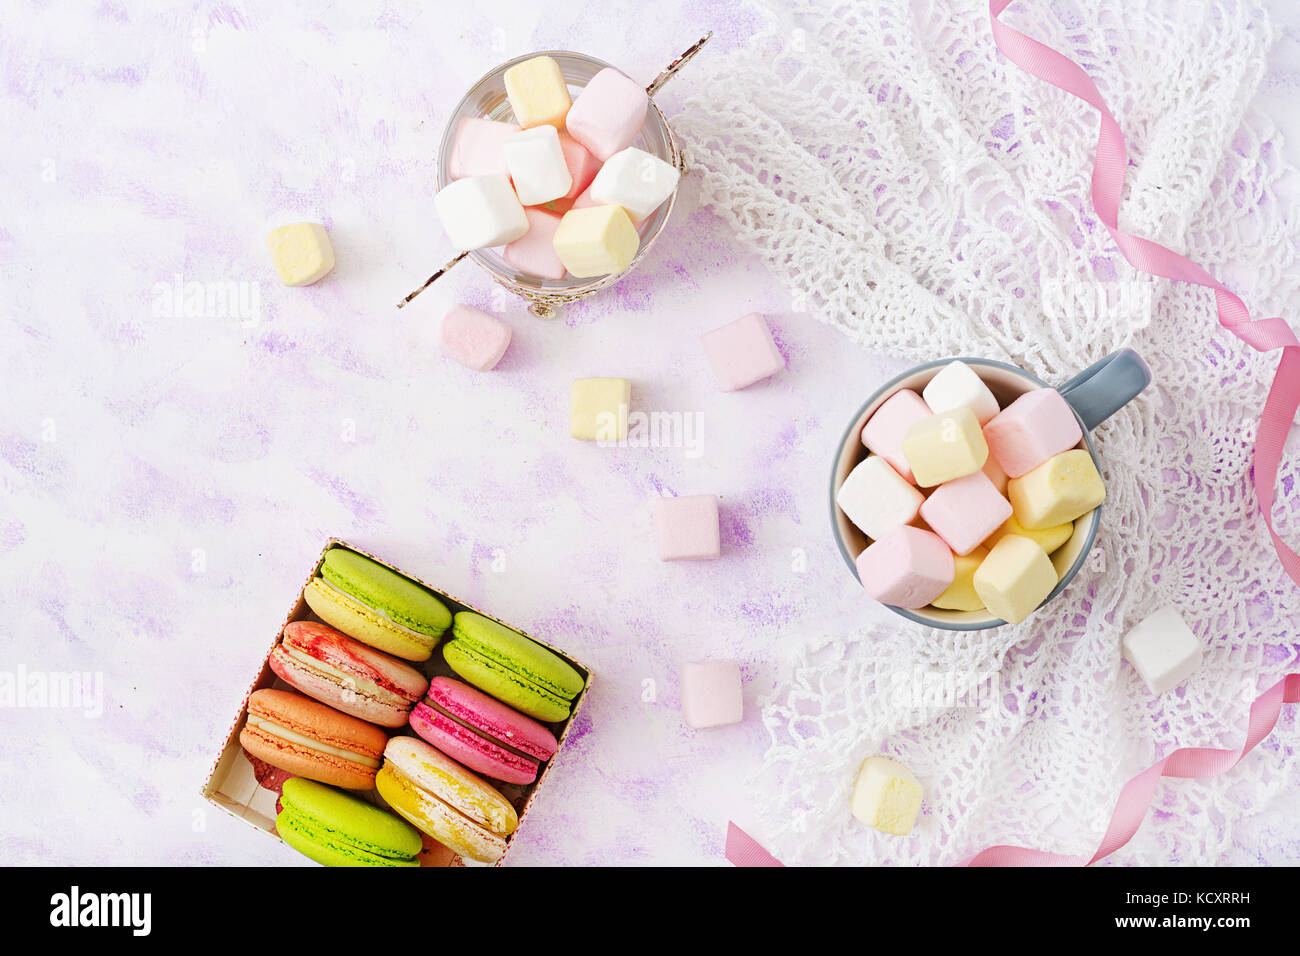 Colorful macaroons and marshmallows on a light background. Flat lay. Top view - Stock Image